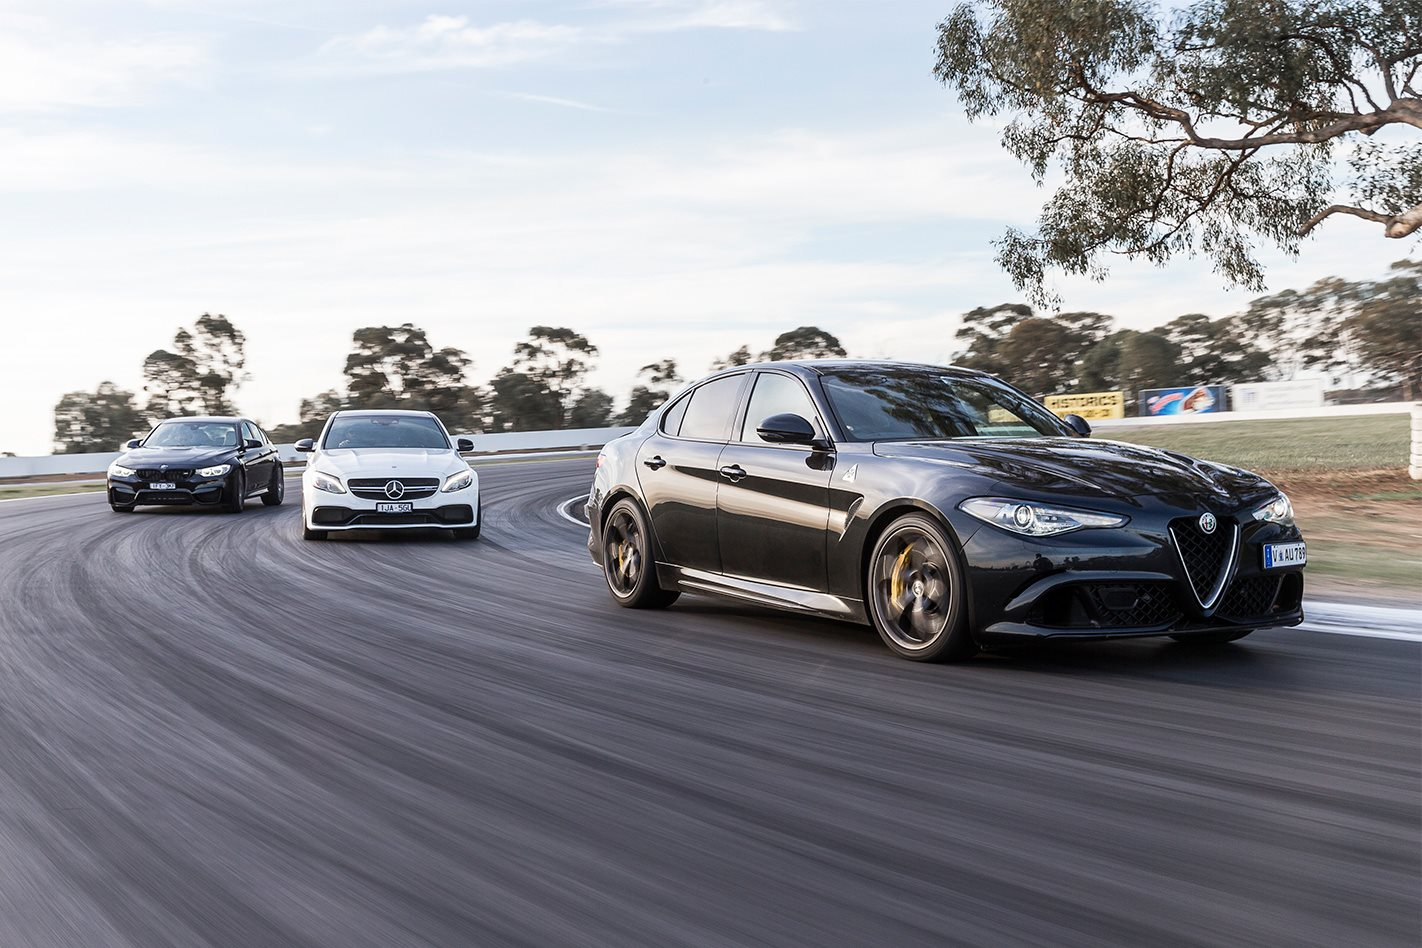 Alfa romeo giulia qv vs mercedes amg c63 s vs bmw m3 for Alfa romeo vs mercedes benz